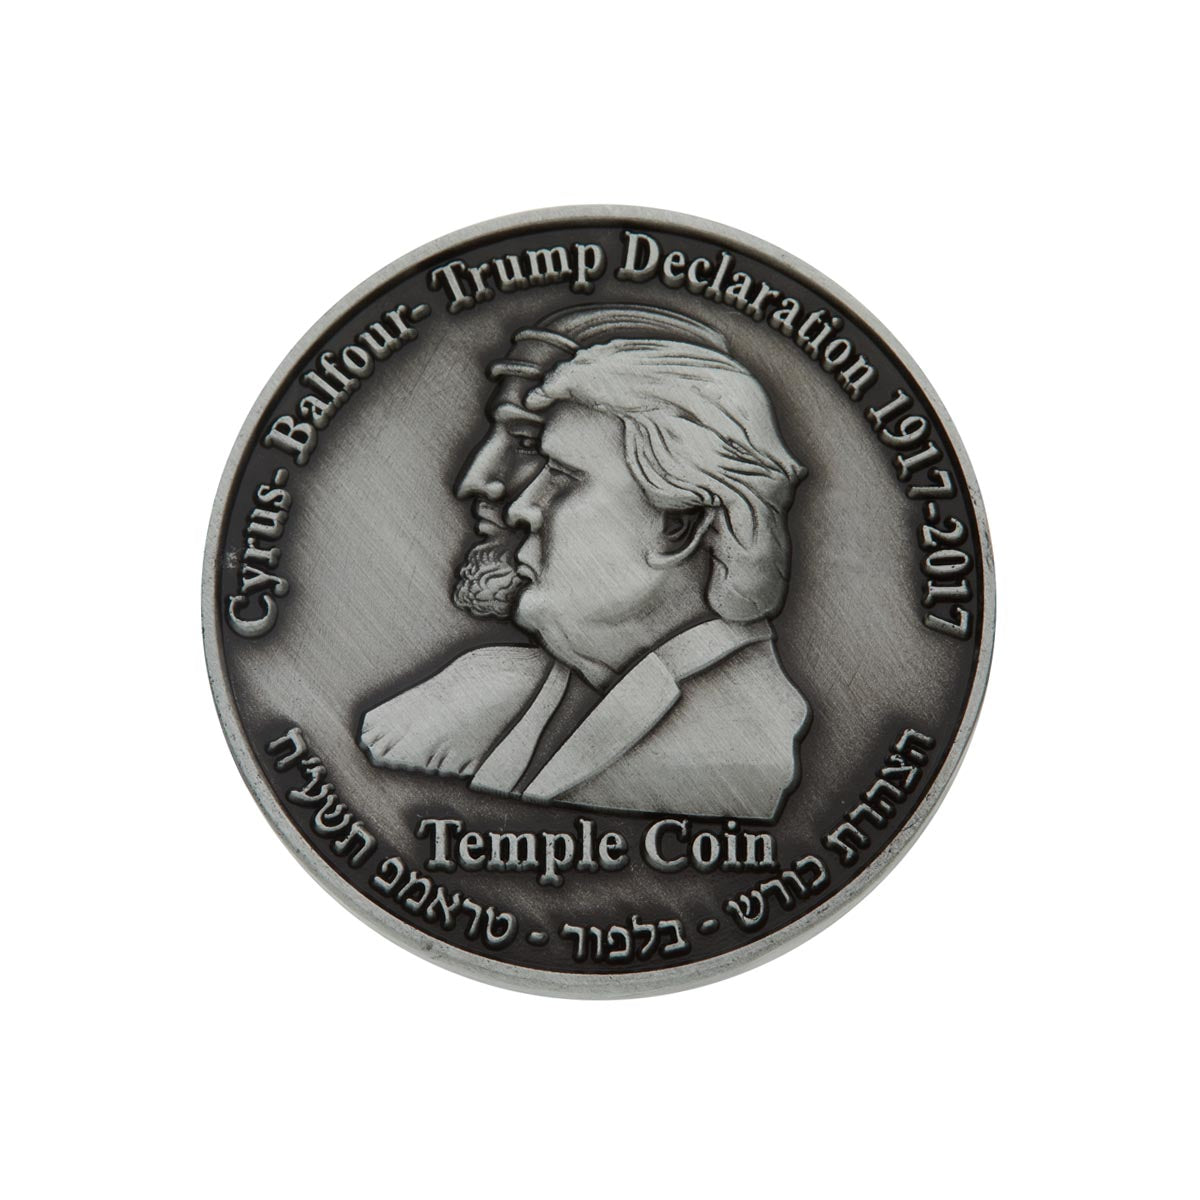 The Temple Coin <br> (Original Design)